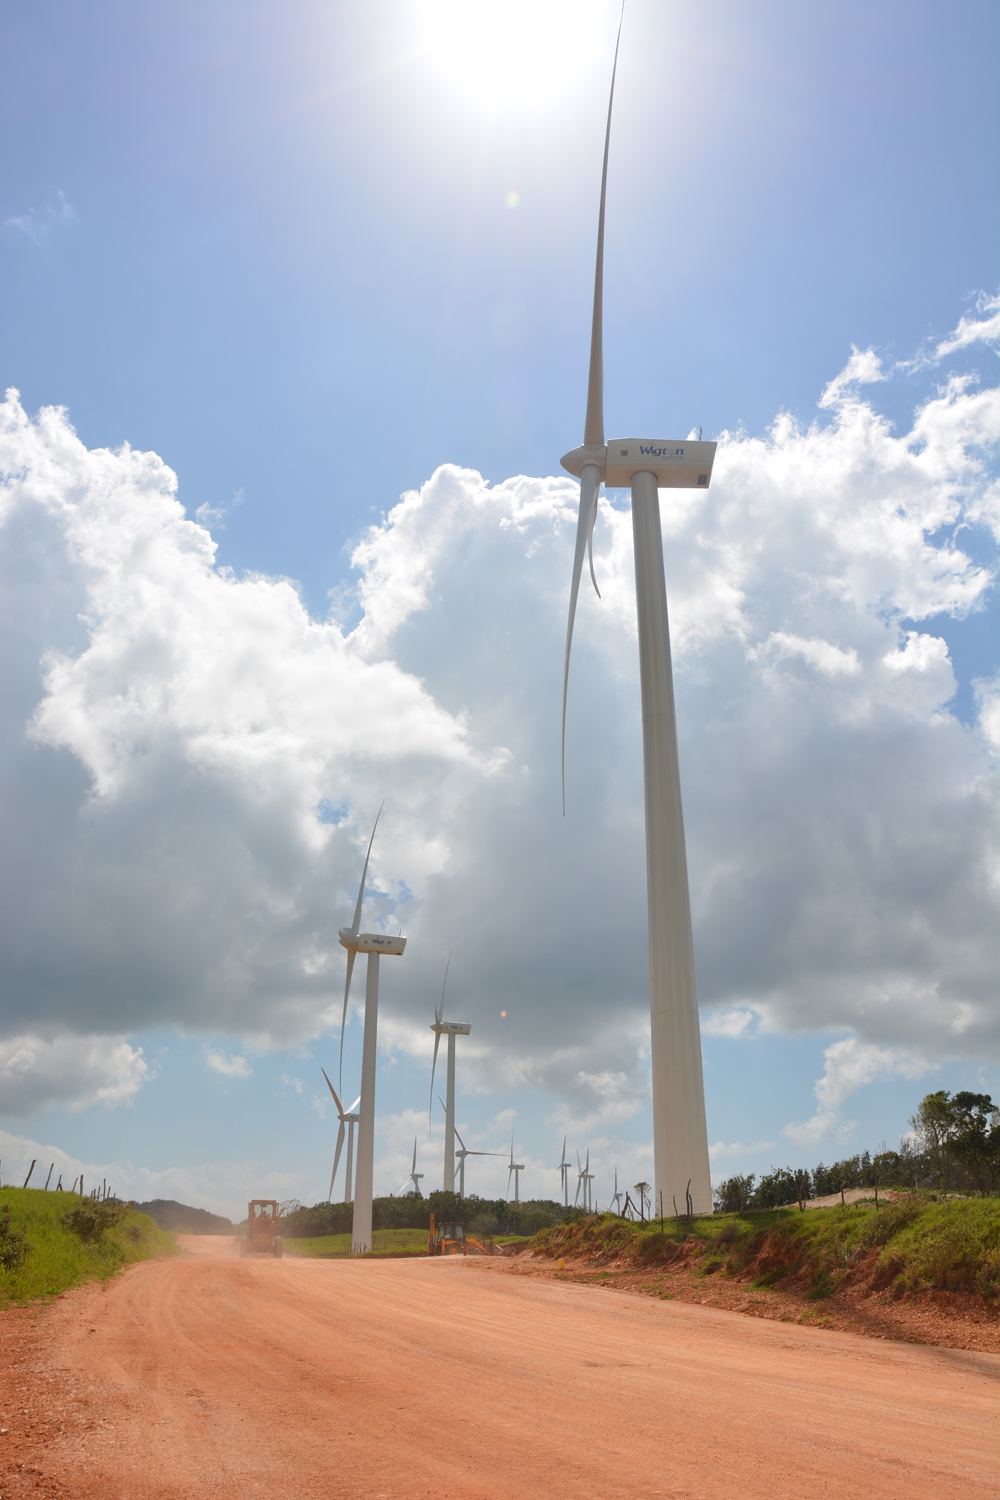 Photo courtesy of Wigton Windfarm, Jamaica